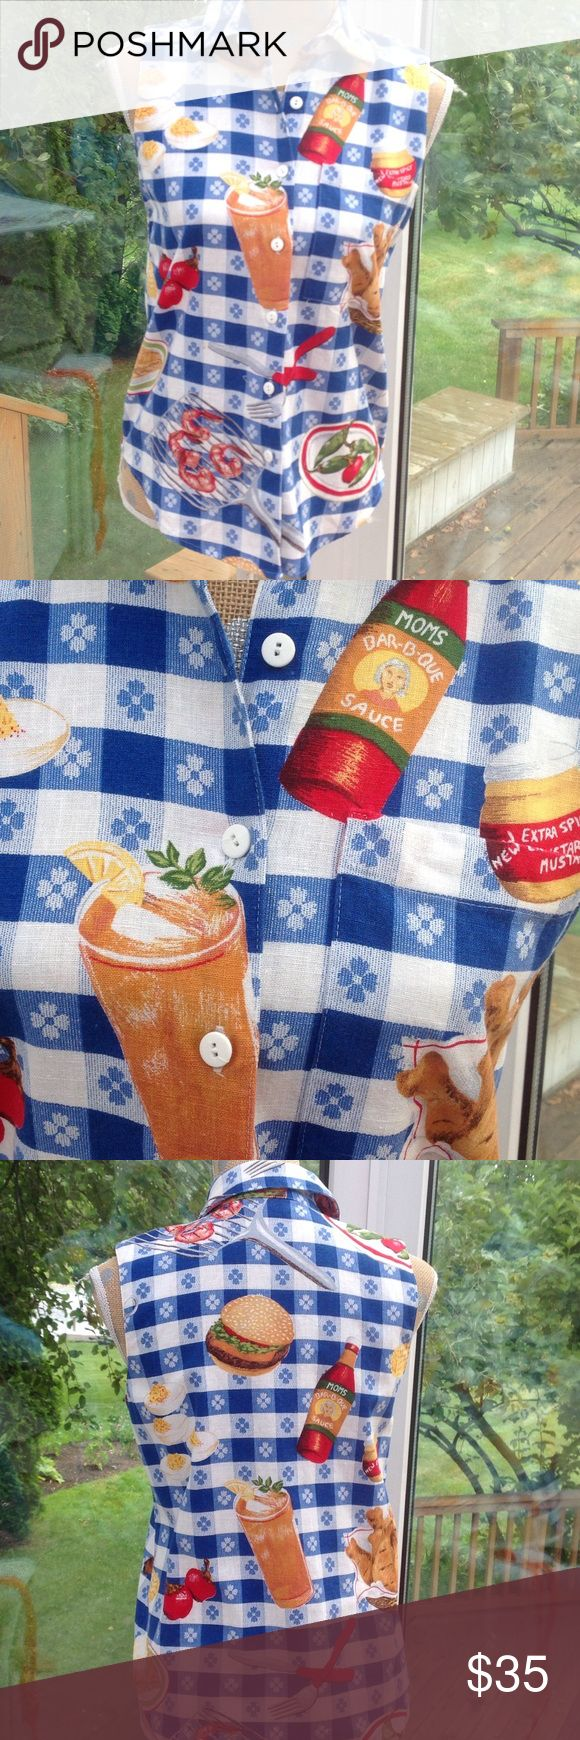 "Bar B Que Blouse. Blue and white checkered background with various BBQ foods on i. Deviled eggs, hamburger, grilled shrimp, apple pie and fried chicken. Features one pocket with chicken on it. Cotton. No size indicated, but I'm guessing a small. Pit to pit is 18"" laying flat. Shoulder to hem is 25"". Sharon Young Tops Blouses"